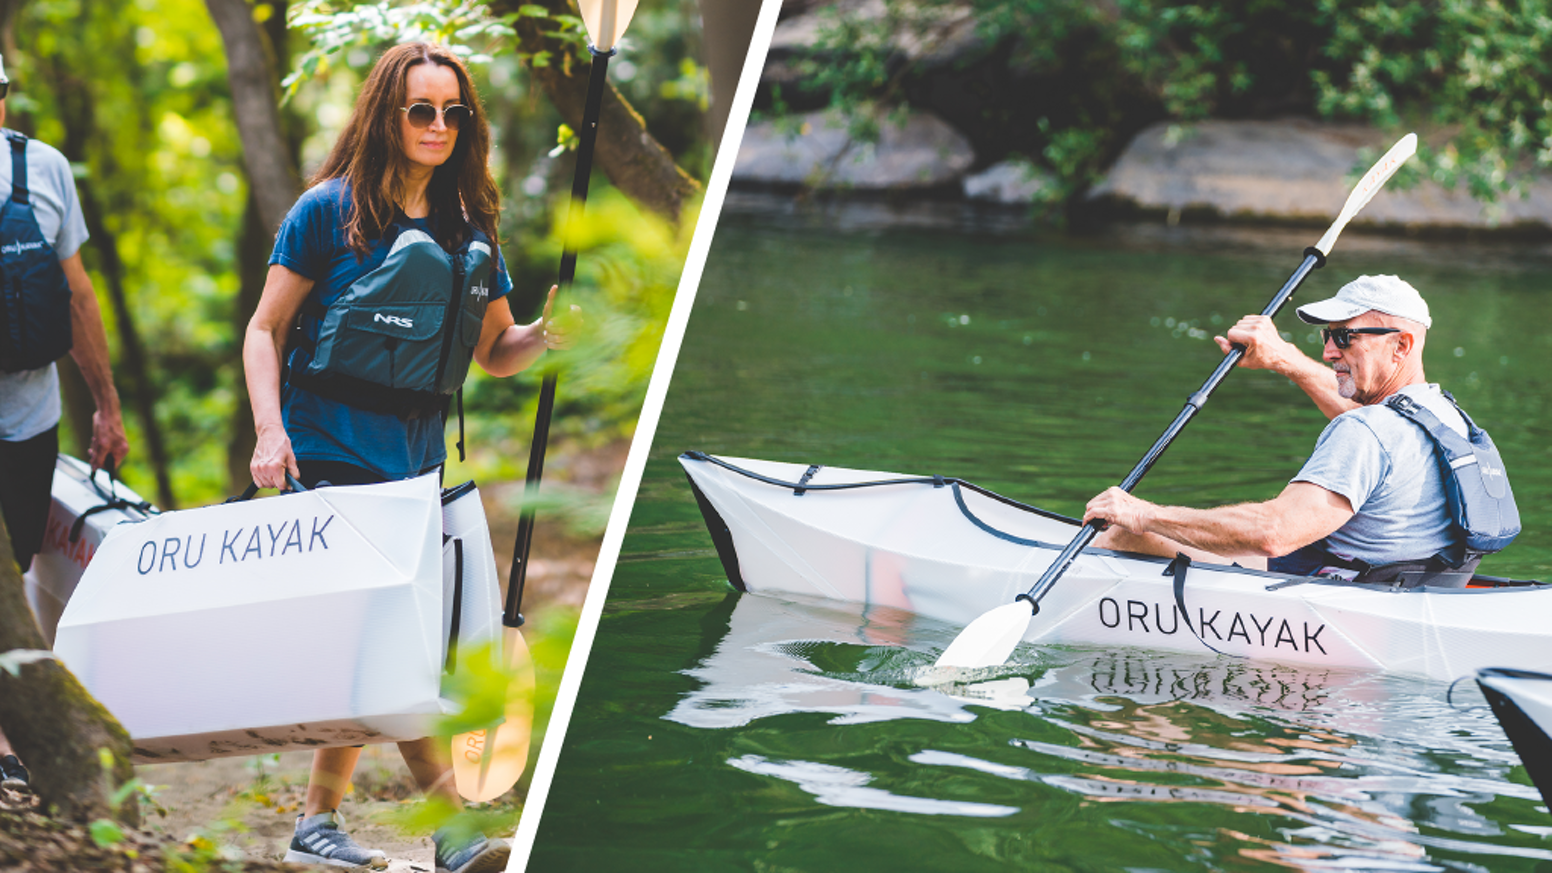 ​A kayak that makes the water simple, easy and accessible. For a world with more spontaneous adventures!